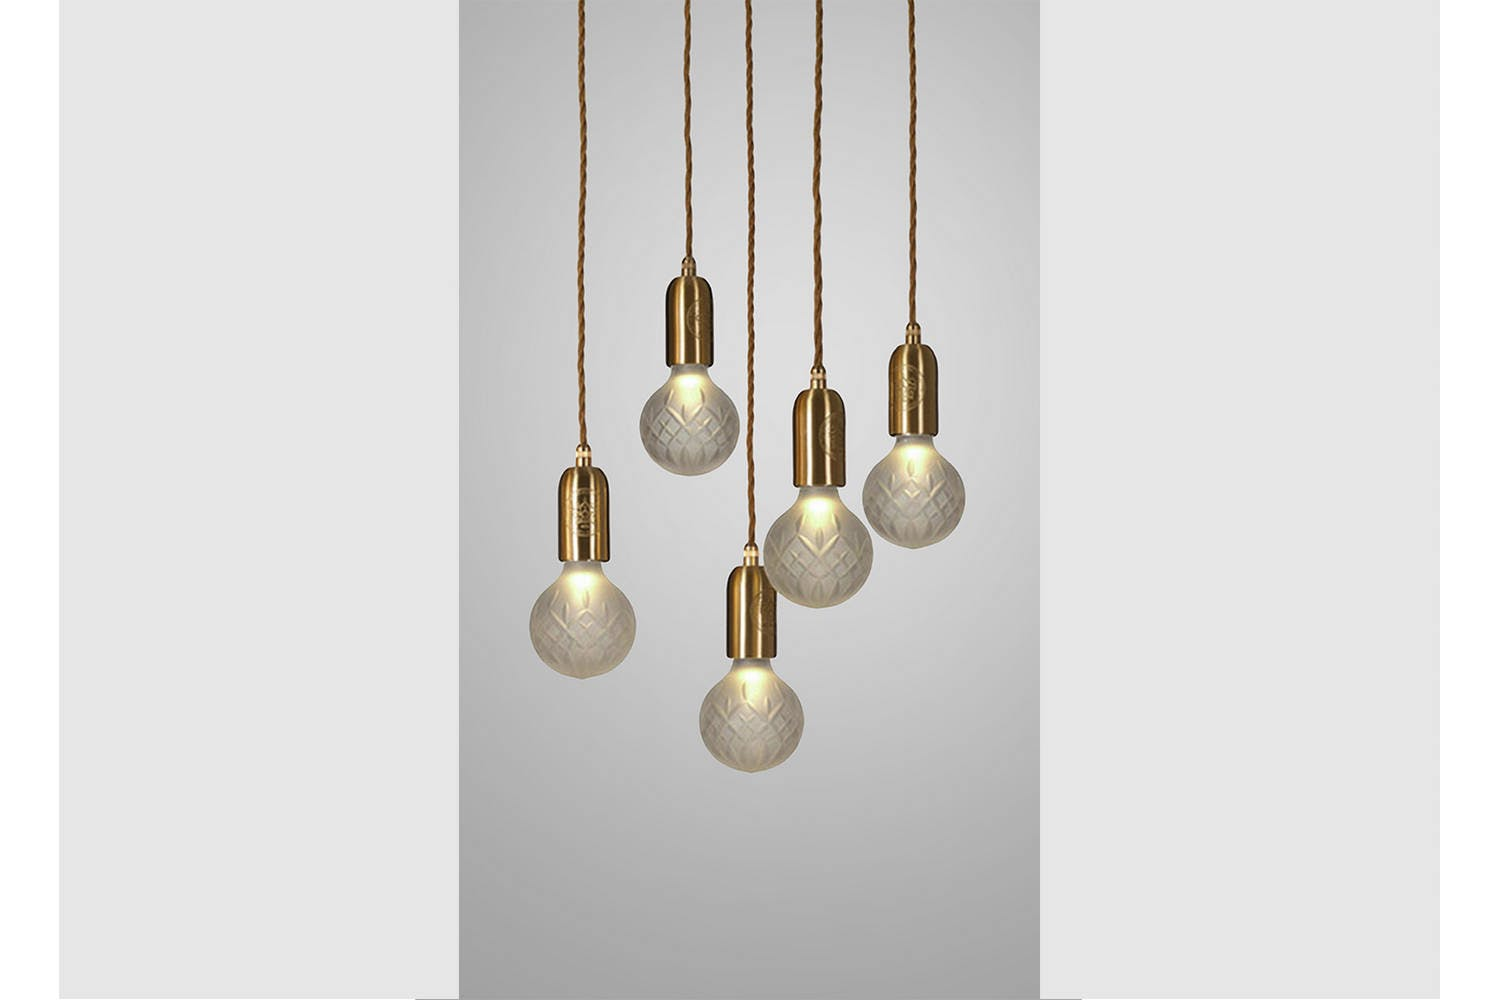 Frosted crystal bulb chandelier 5 piece brushed brass by lee broom frosted crystal bulb chandelier 5 piece brushed brass by lee broom space furniture aloadofball Gallery